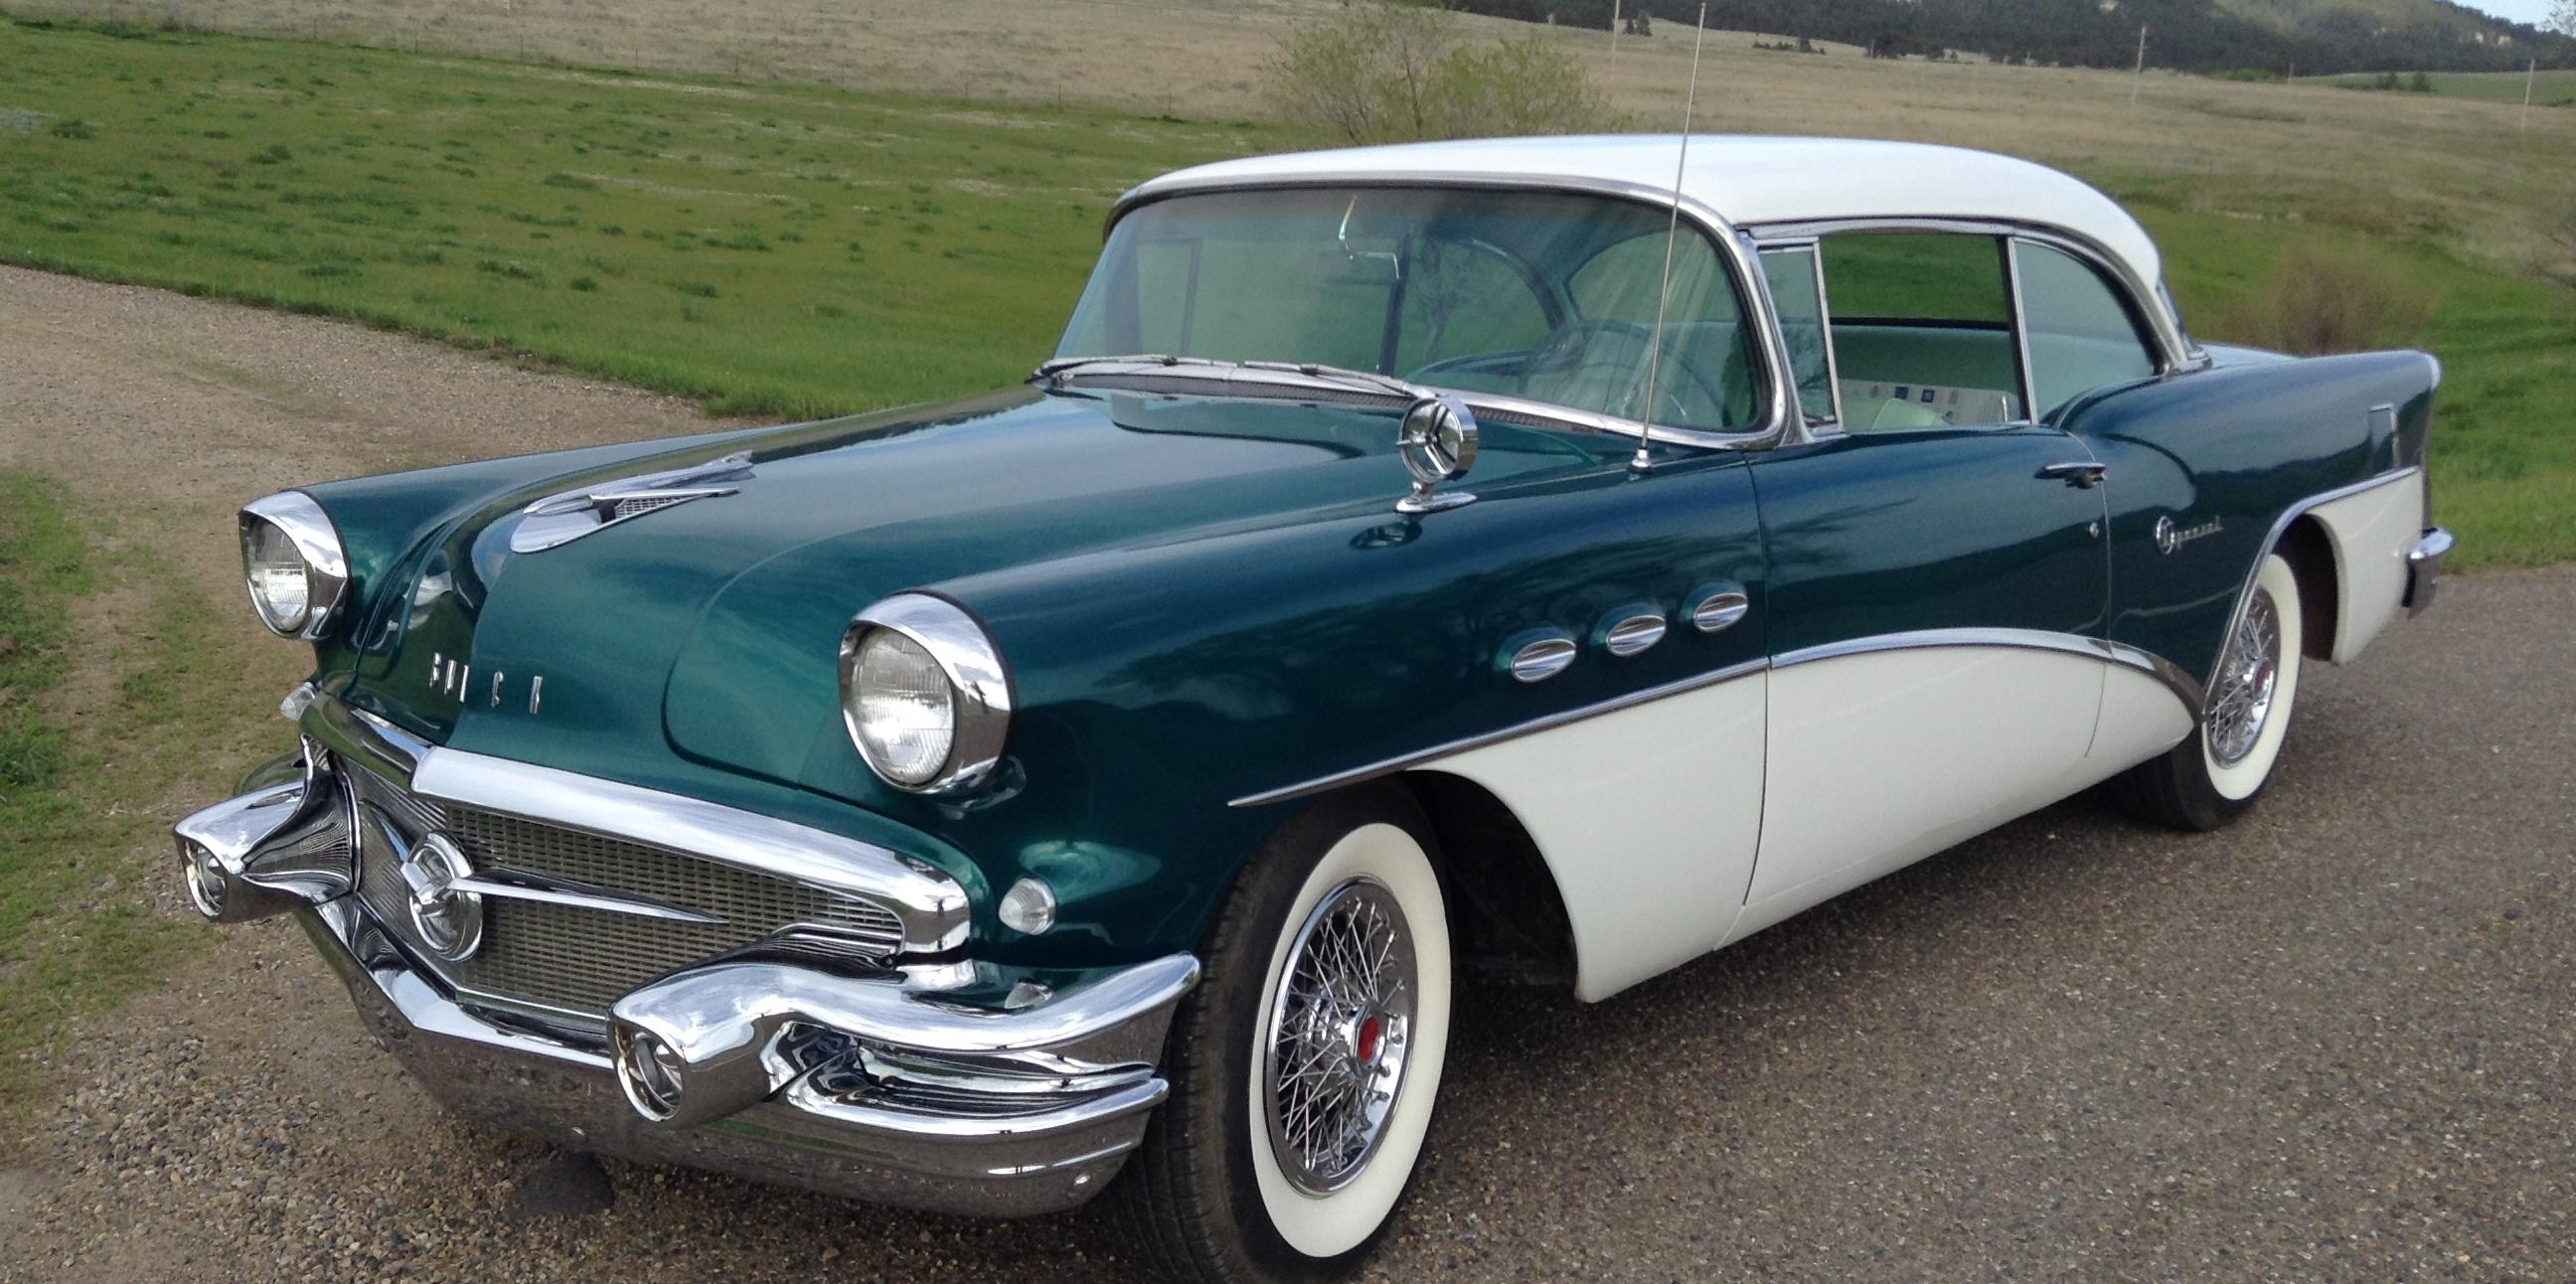 Weewee 1956 Buick Special Deluxe Specs Photos Modification Info At Cardomain